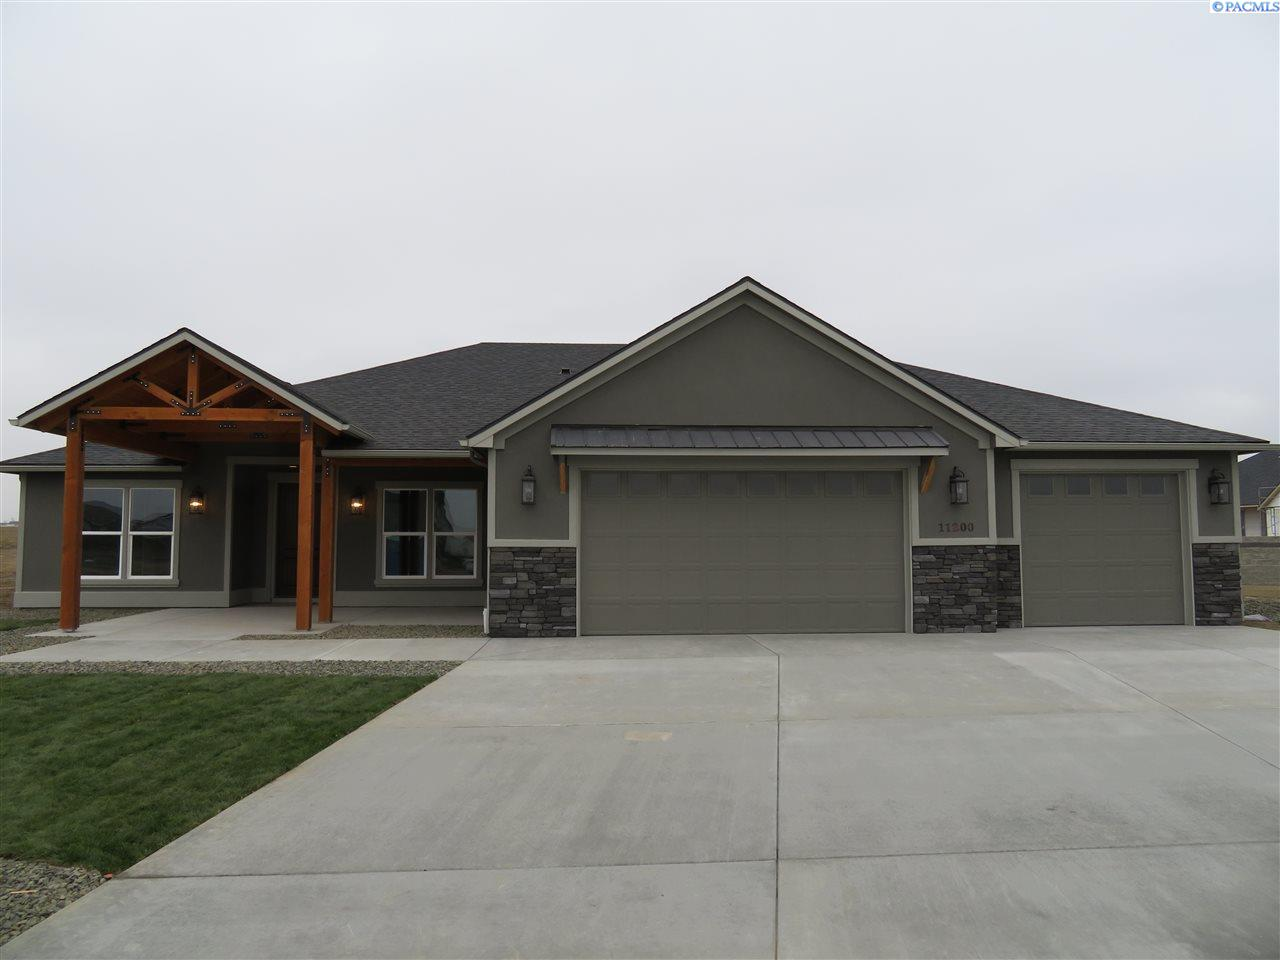 Single Family Home for Sale at 11200 Hoyt Ct. Archer Estates Ii 11200 Hoyt Ct. Archer Estates Ii Pasco, Washington 99301 United States